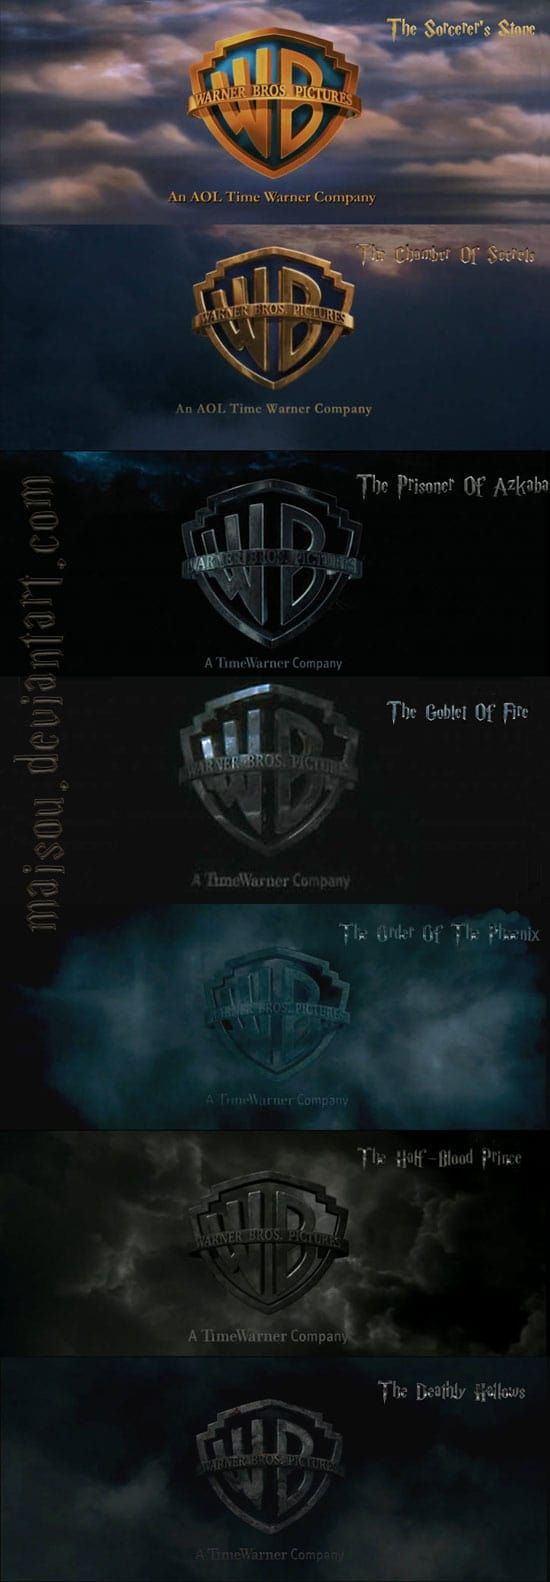 Evolution Of Warner Bros. Logo In Harry Potter